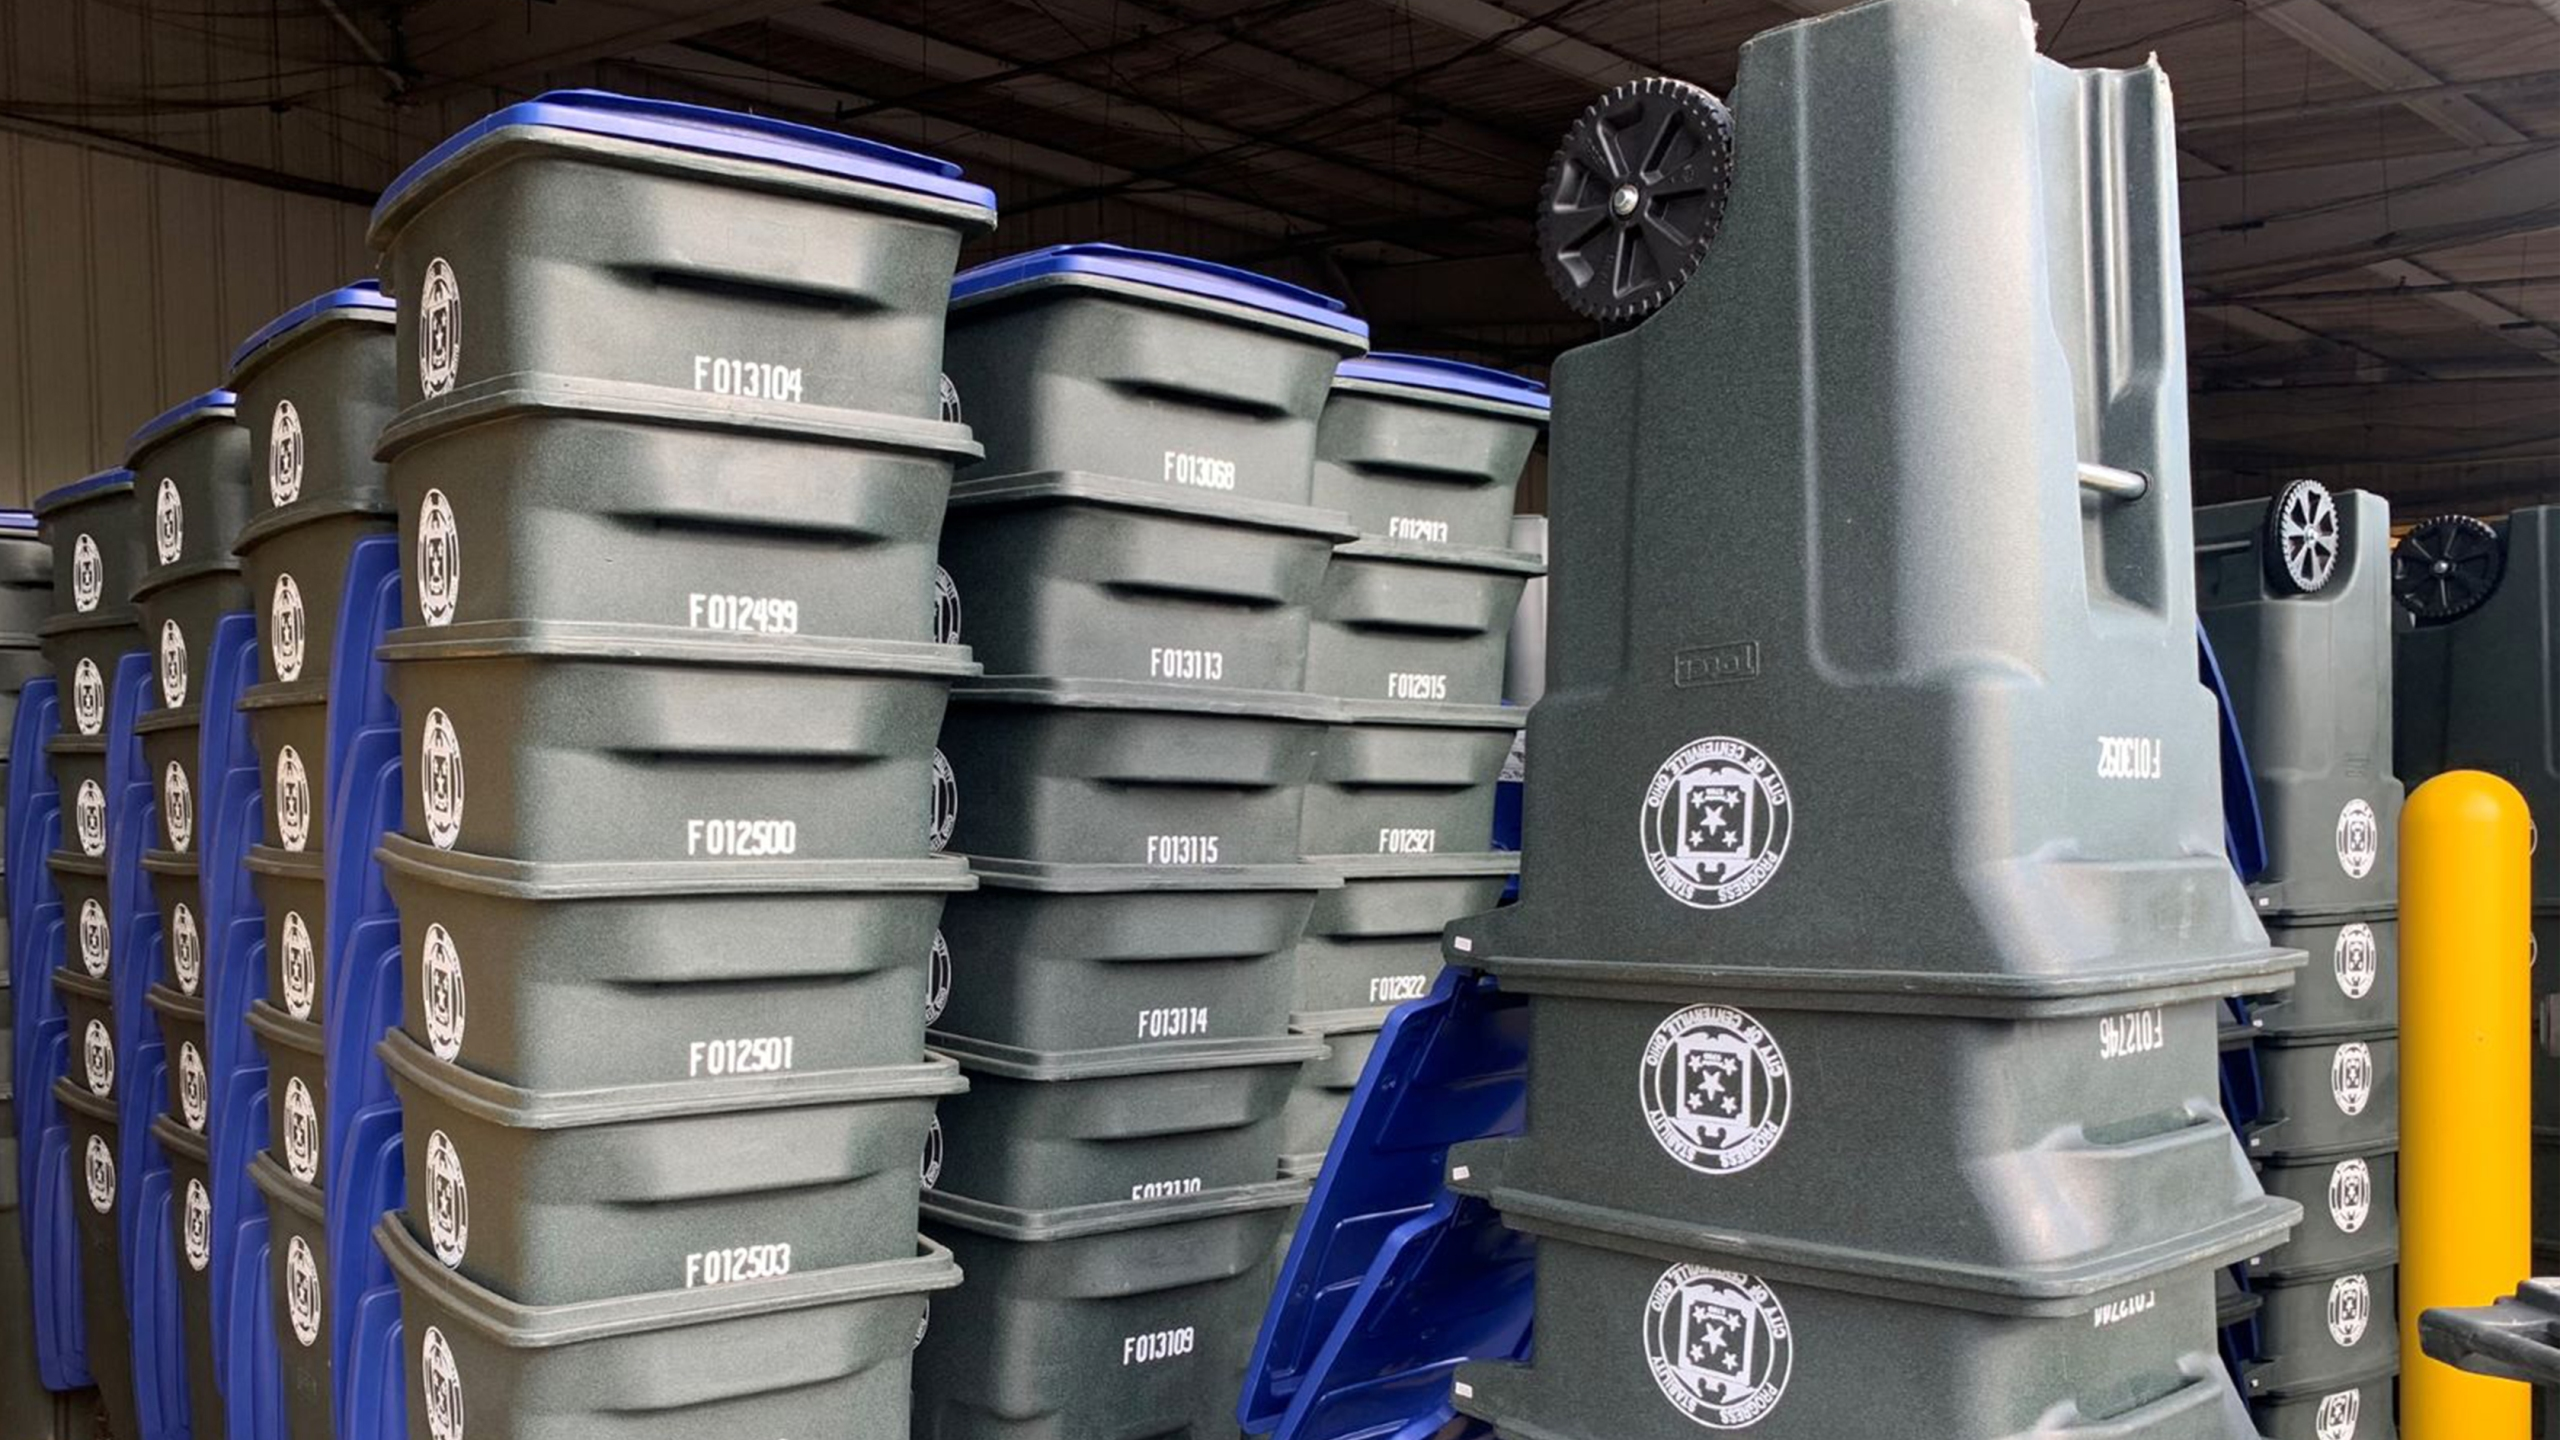 Recycling containers Centerville